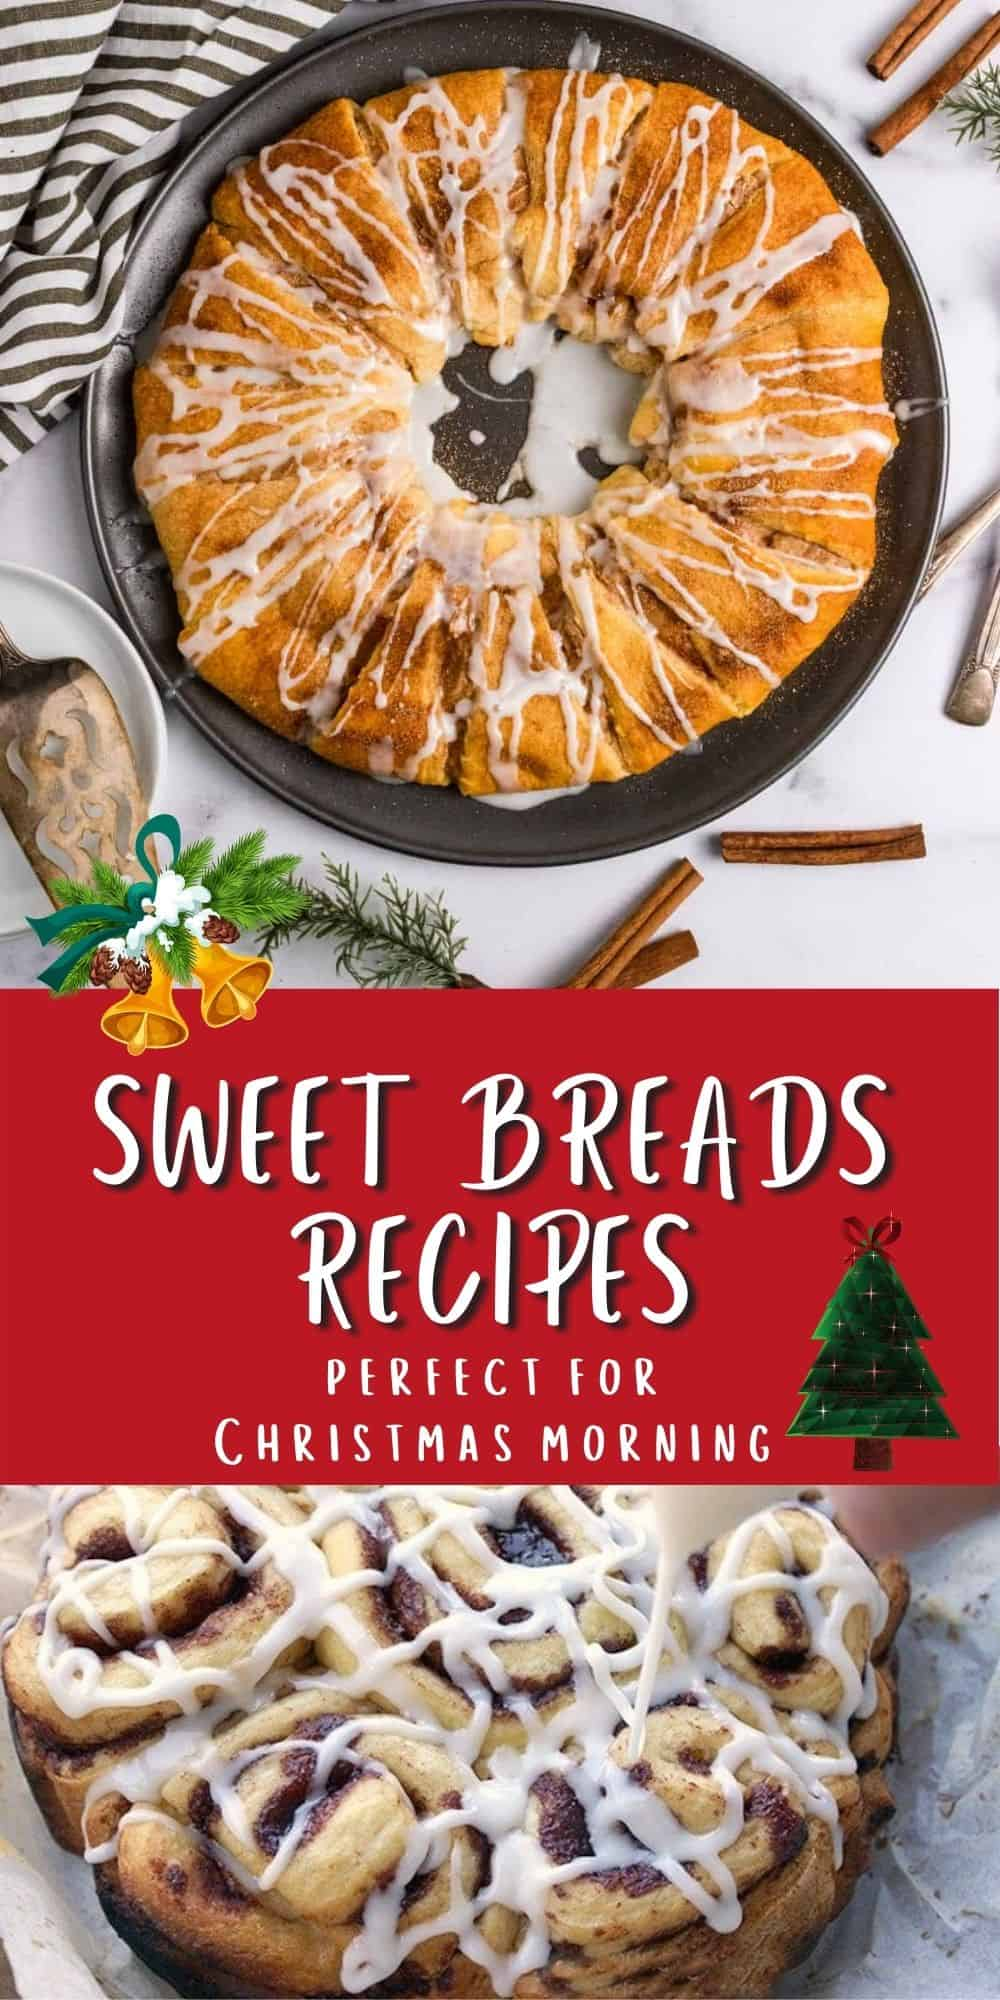 Sweet Bread Breakfast Recipes for Christmas morning